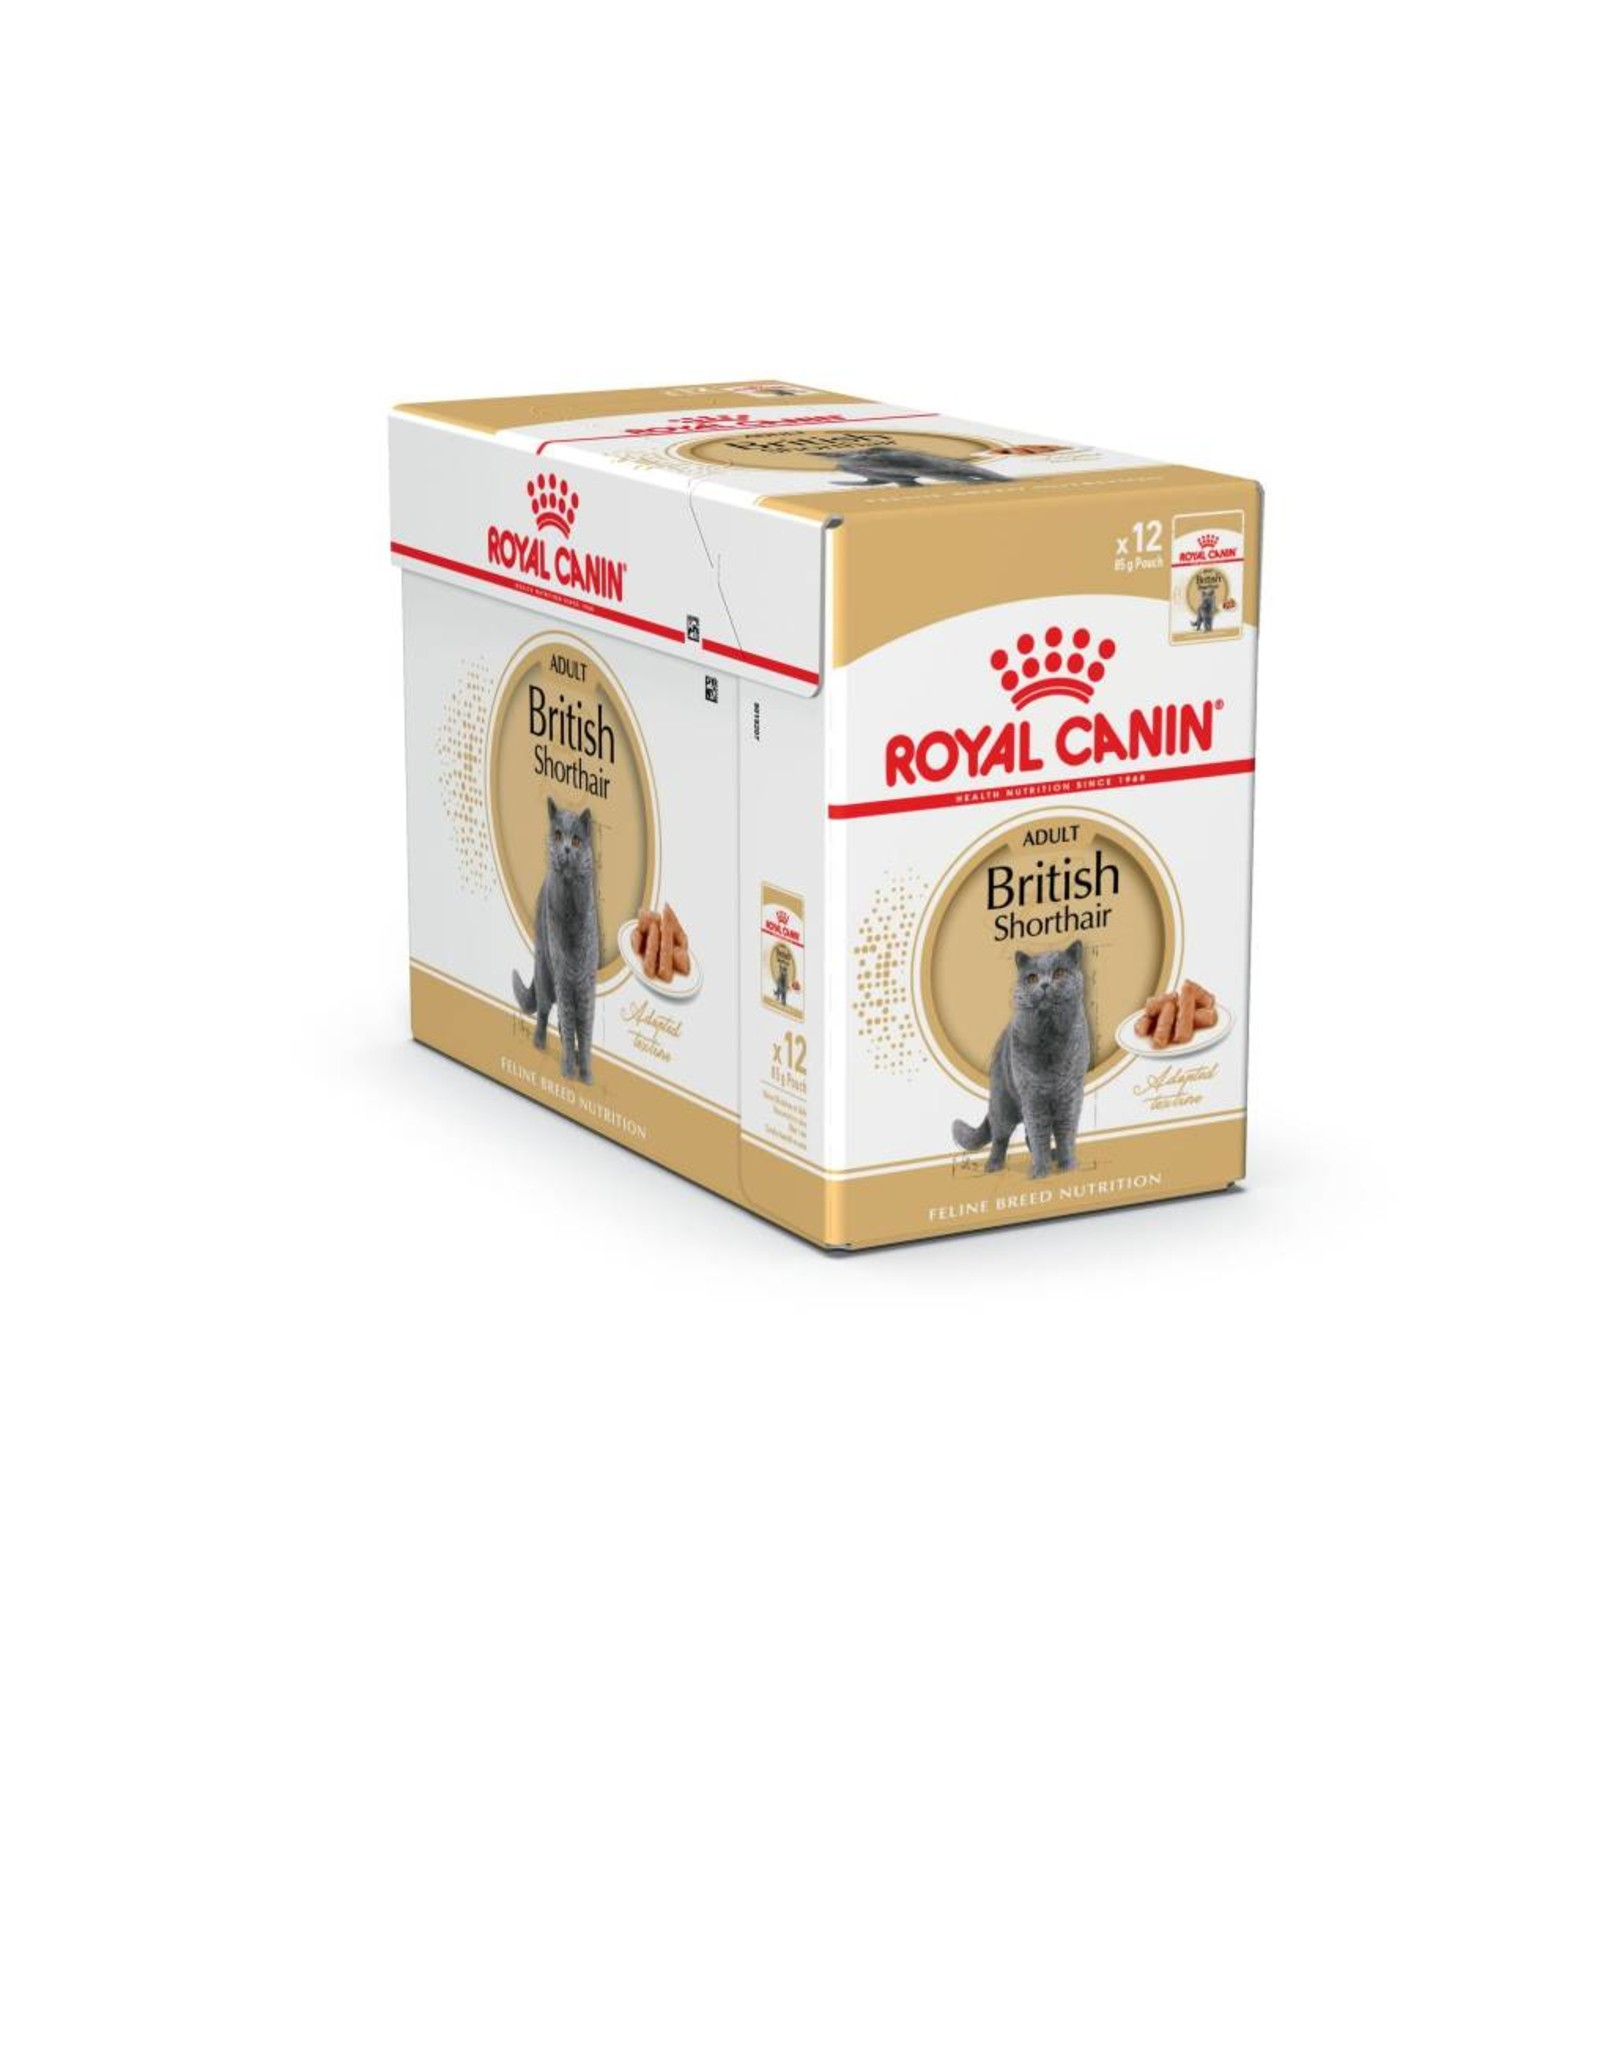 Royal Canin British Shorthair Adult Cat Wet Food Pouch in Gravy, 85g, box of 12